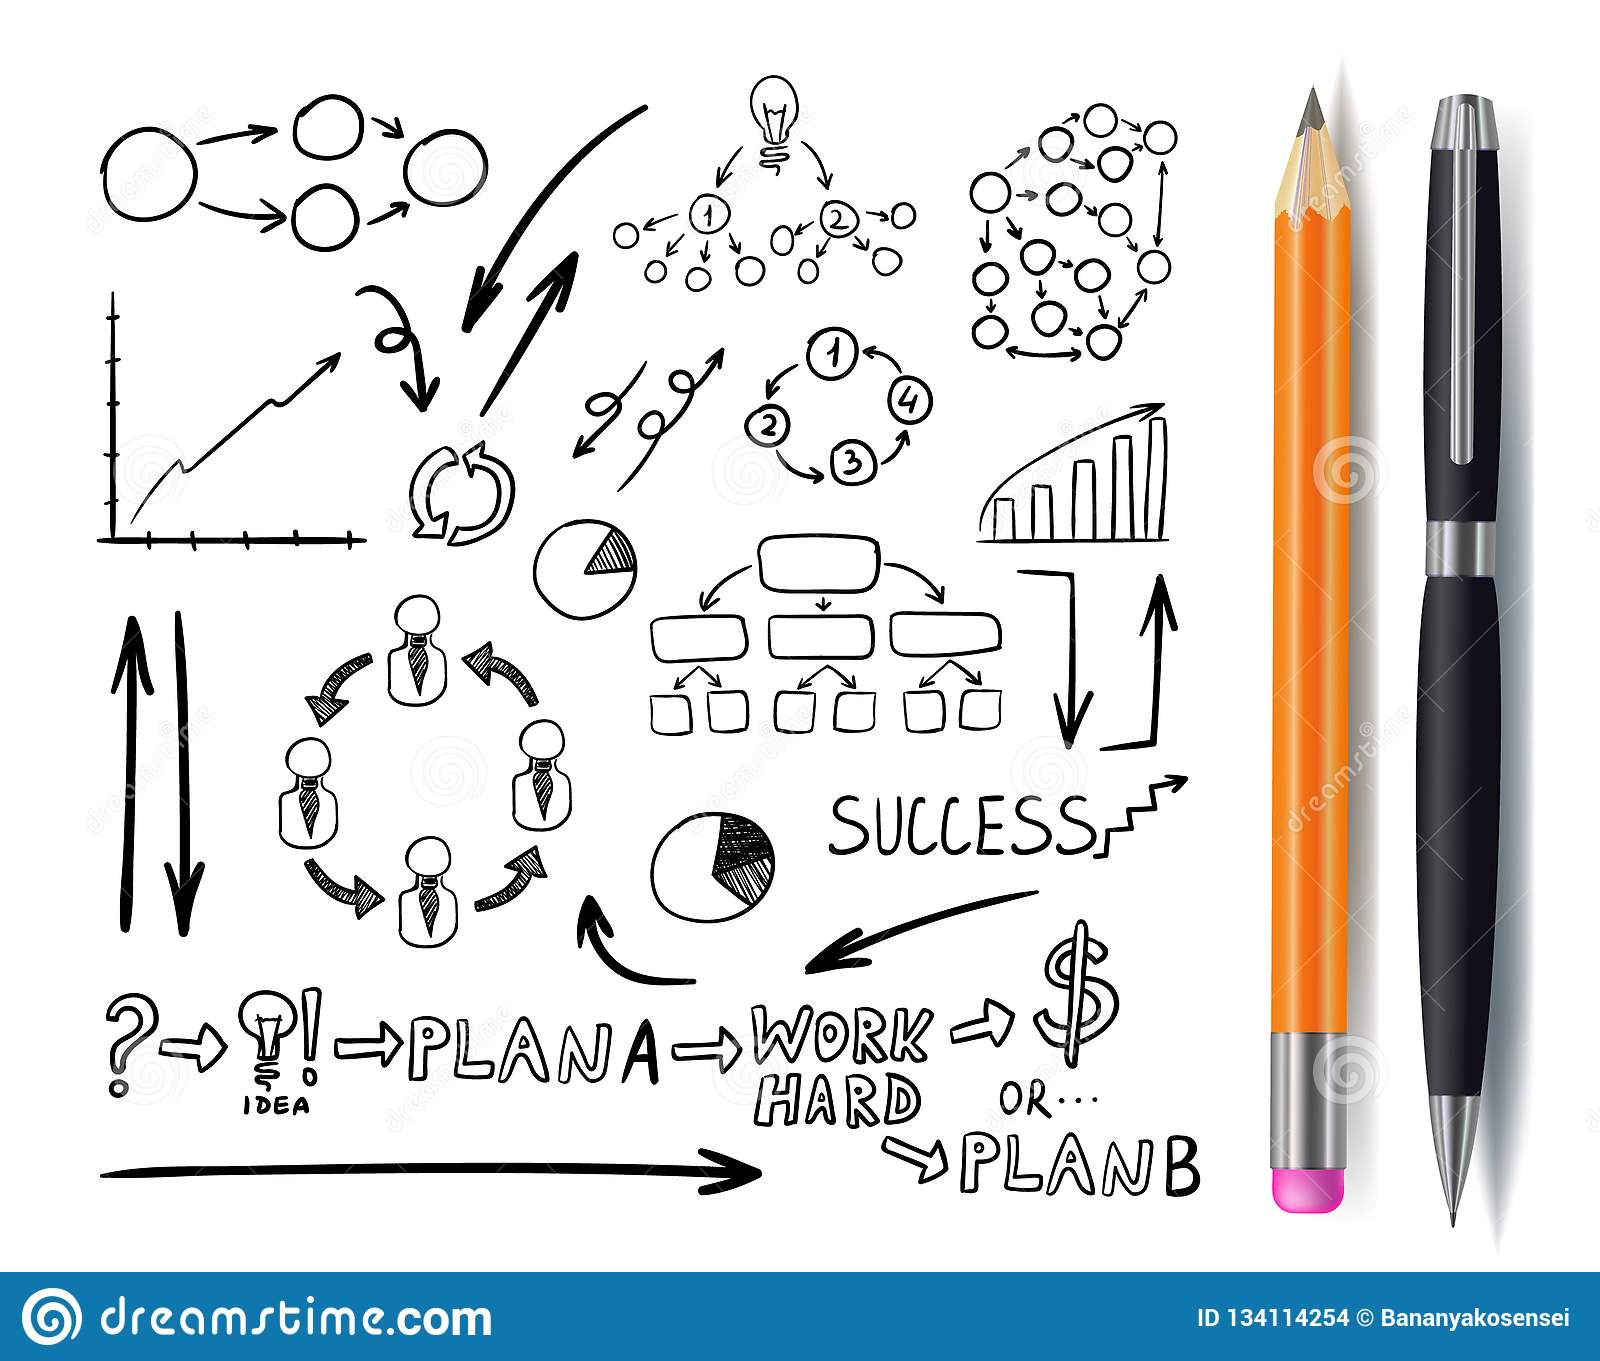 Vector Set of Business Doodles, Hand Drawn Icons with Pen and Pencil, Isolated, Sketches.